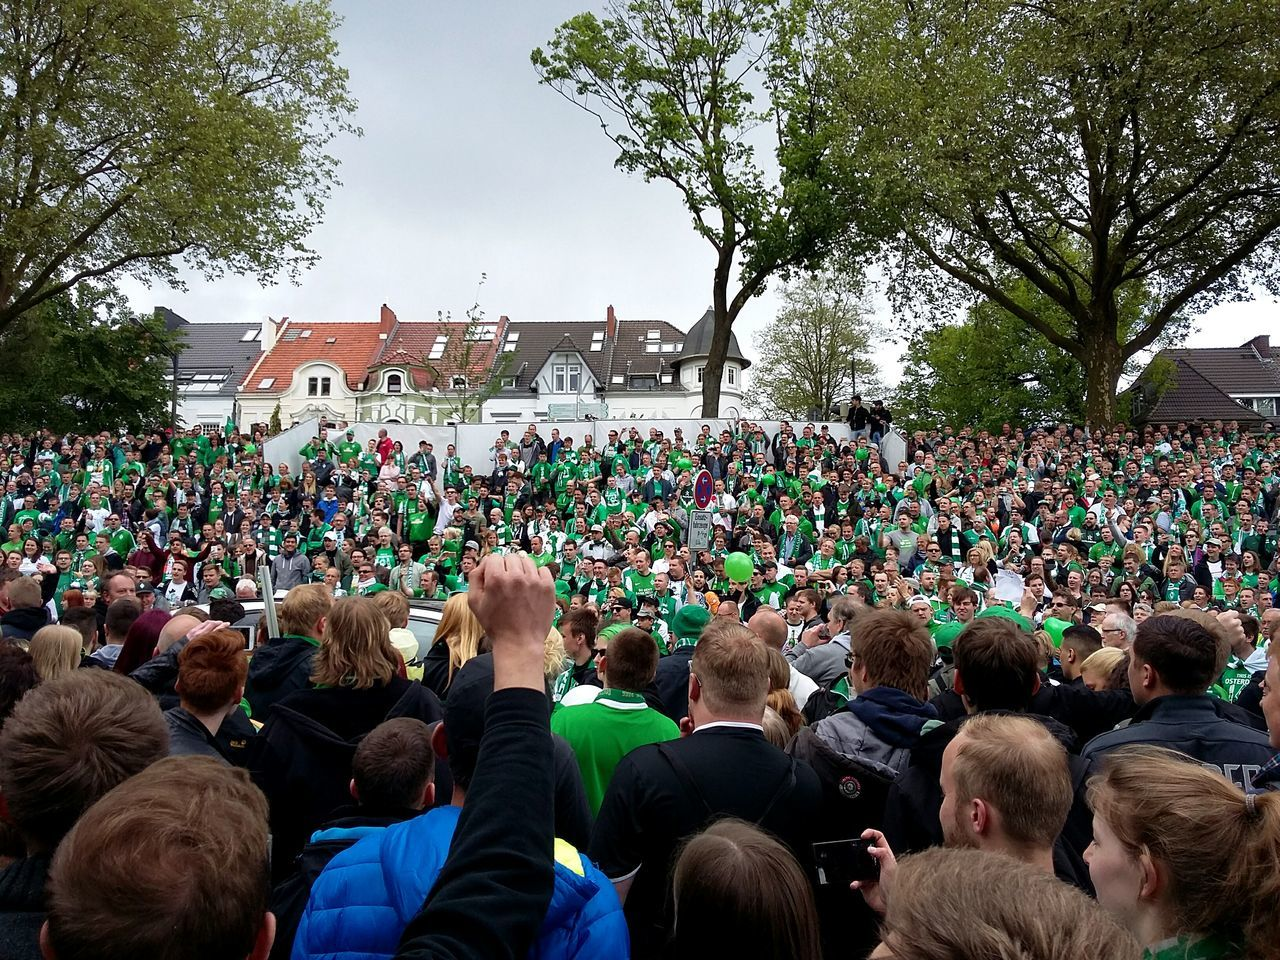 Werder Bremen fans waiting for the team.